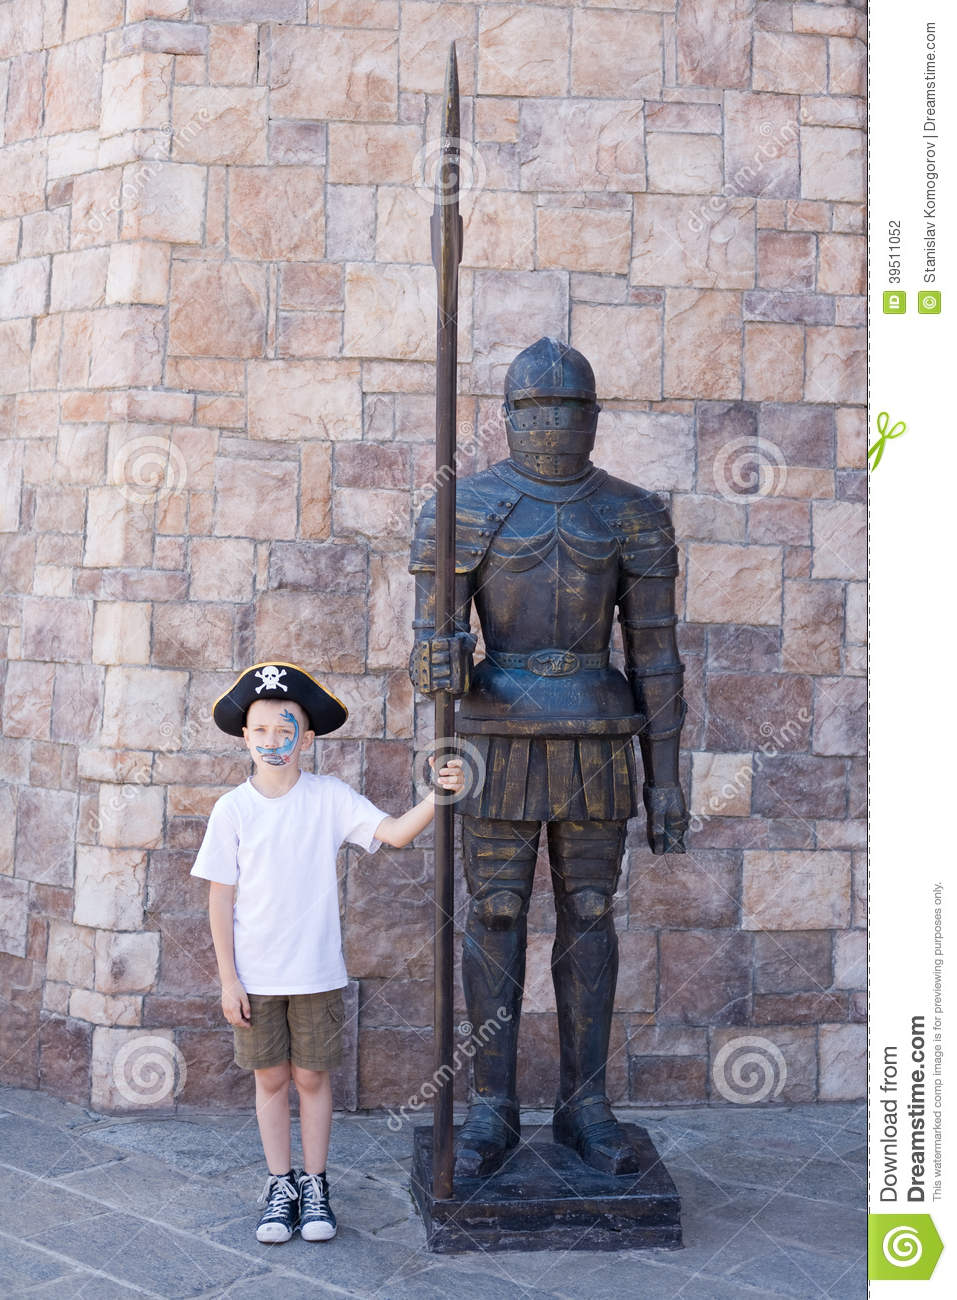 Boy with a statue of a medieval warrior